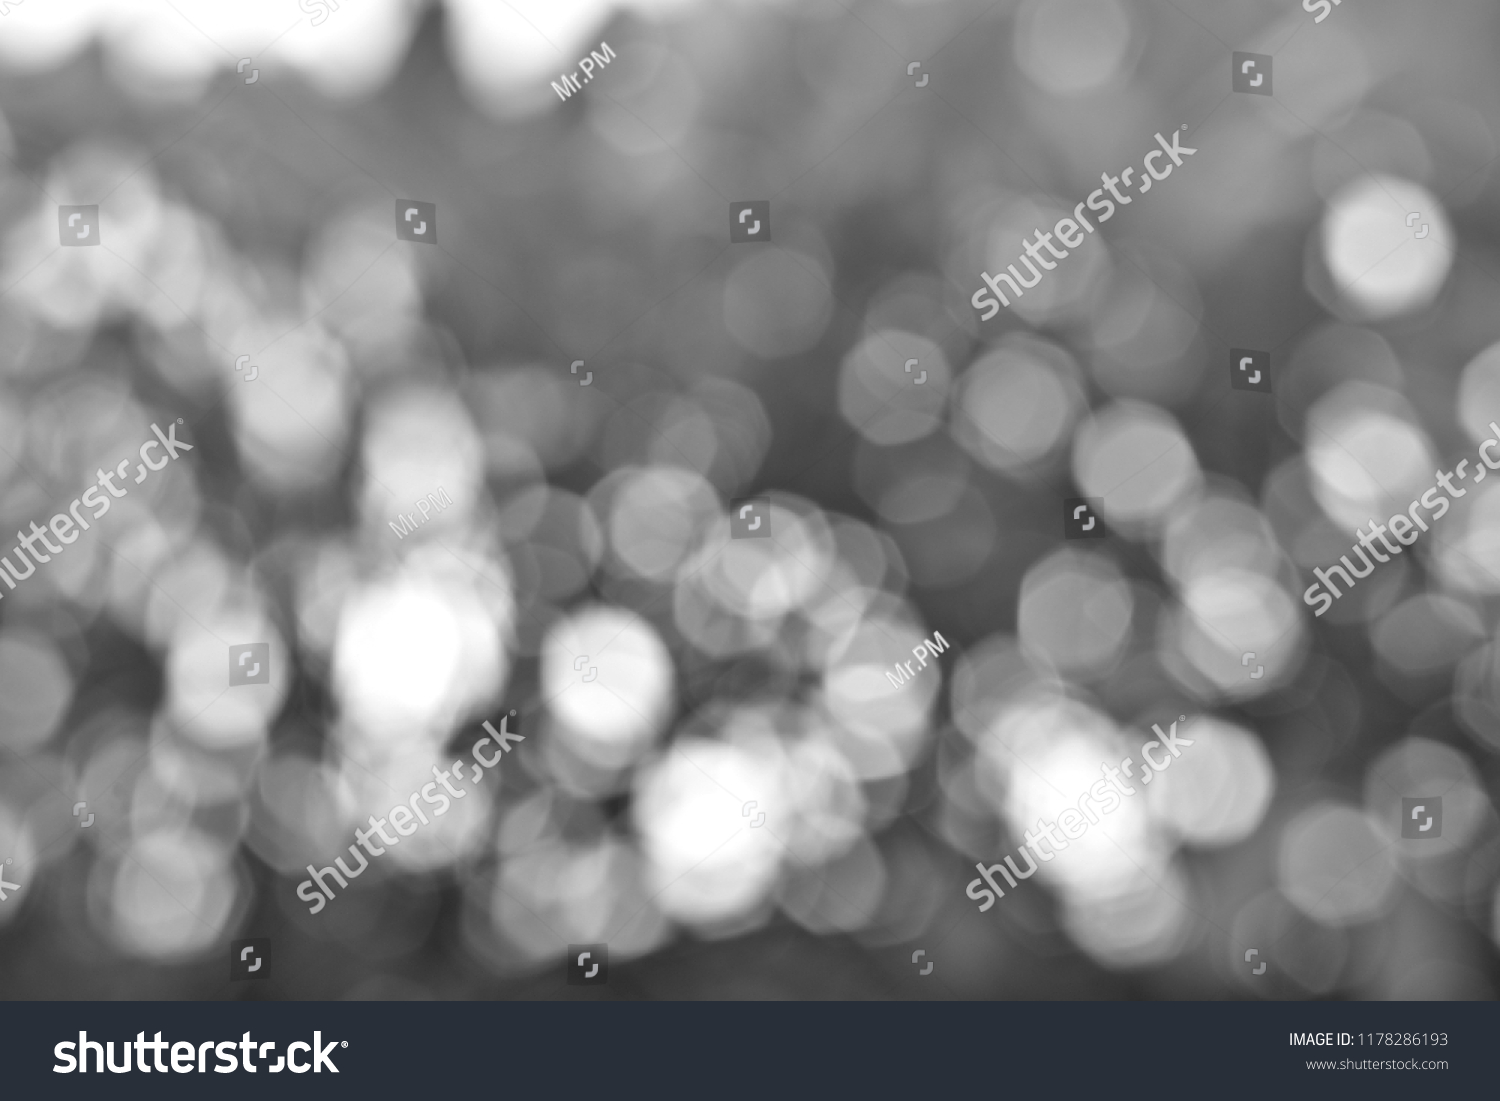 Blurred defocused scintillate abstract black and white background concept.  #1178286193